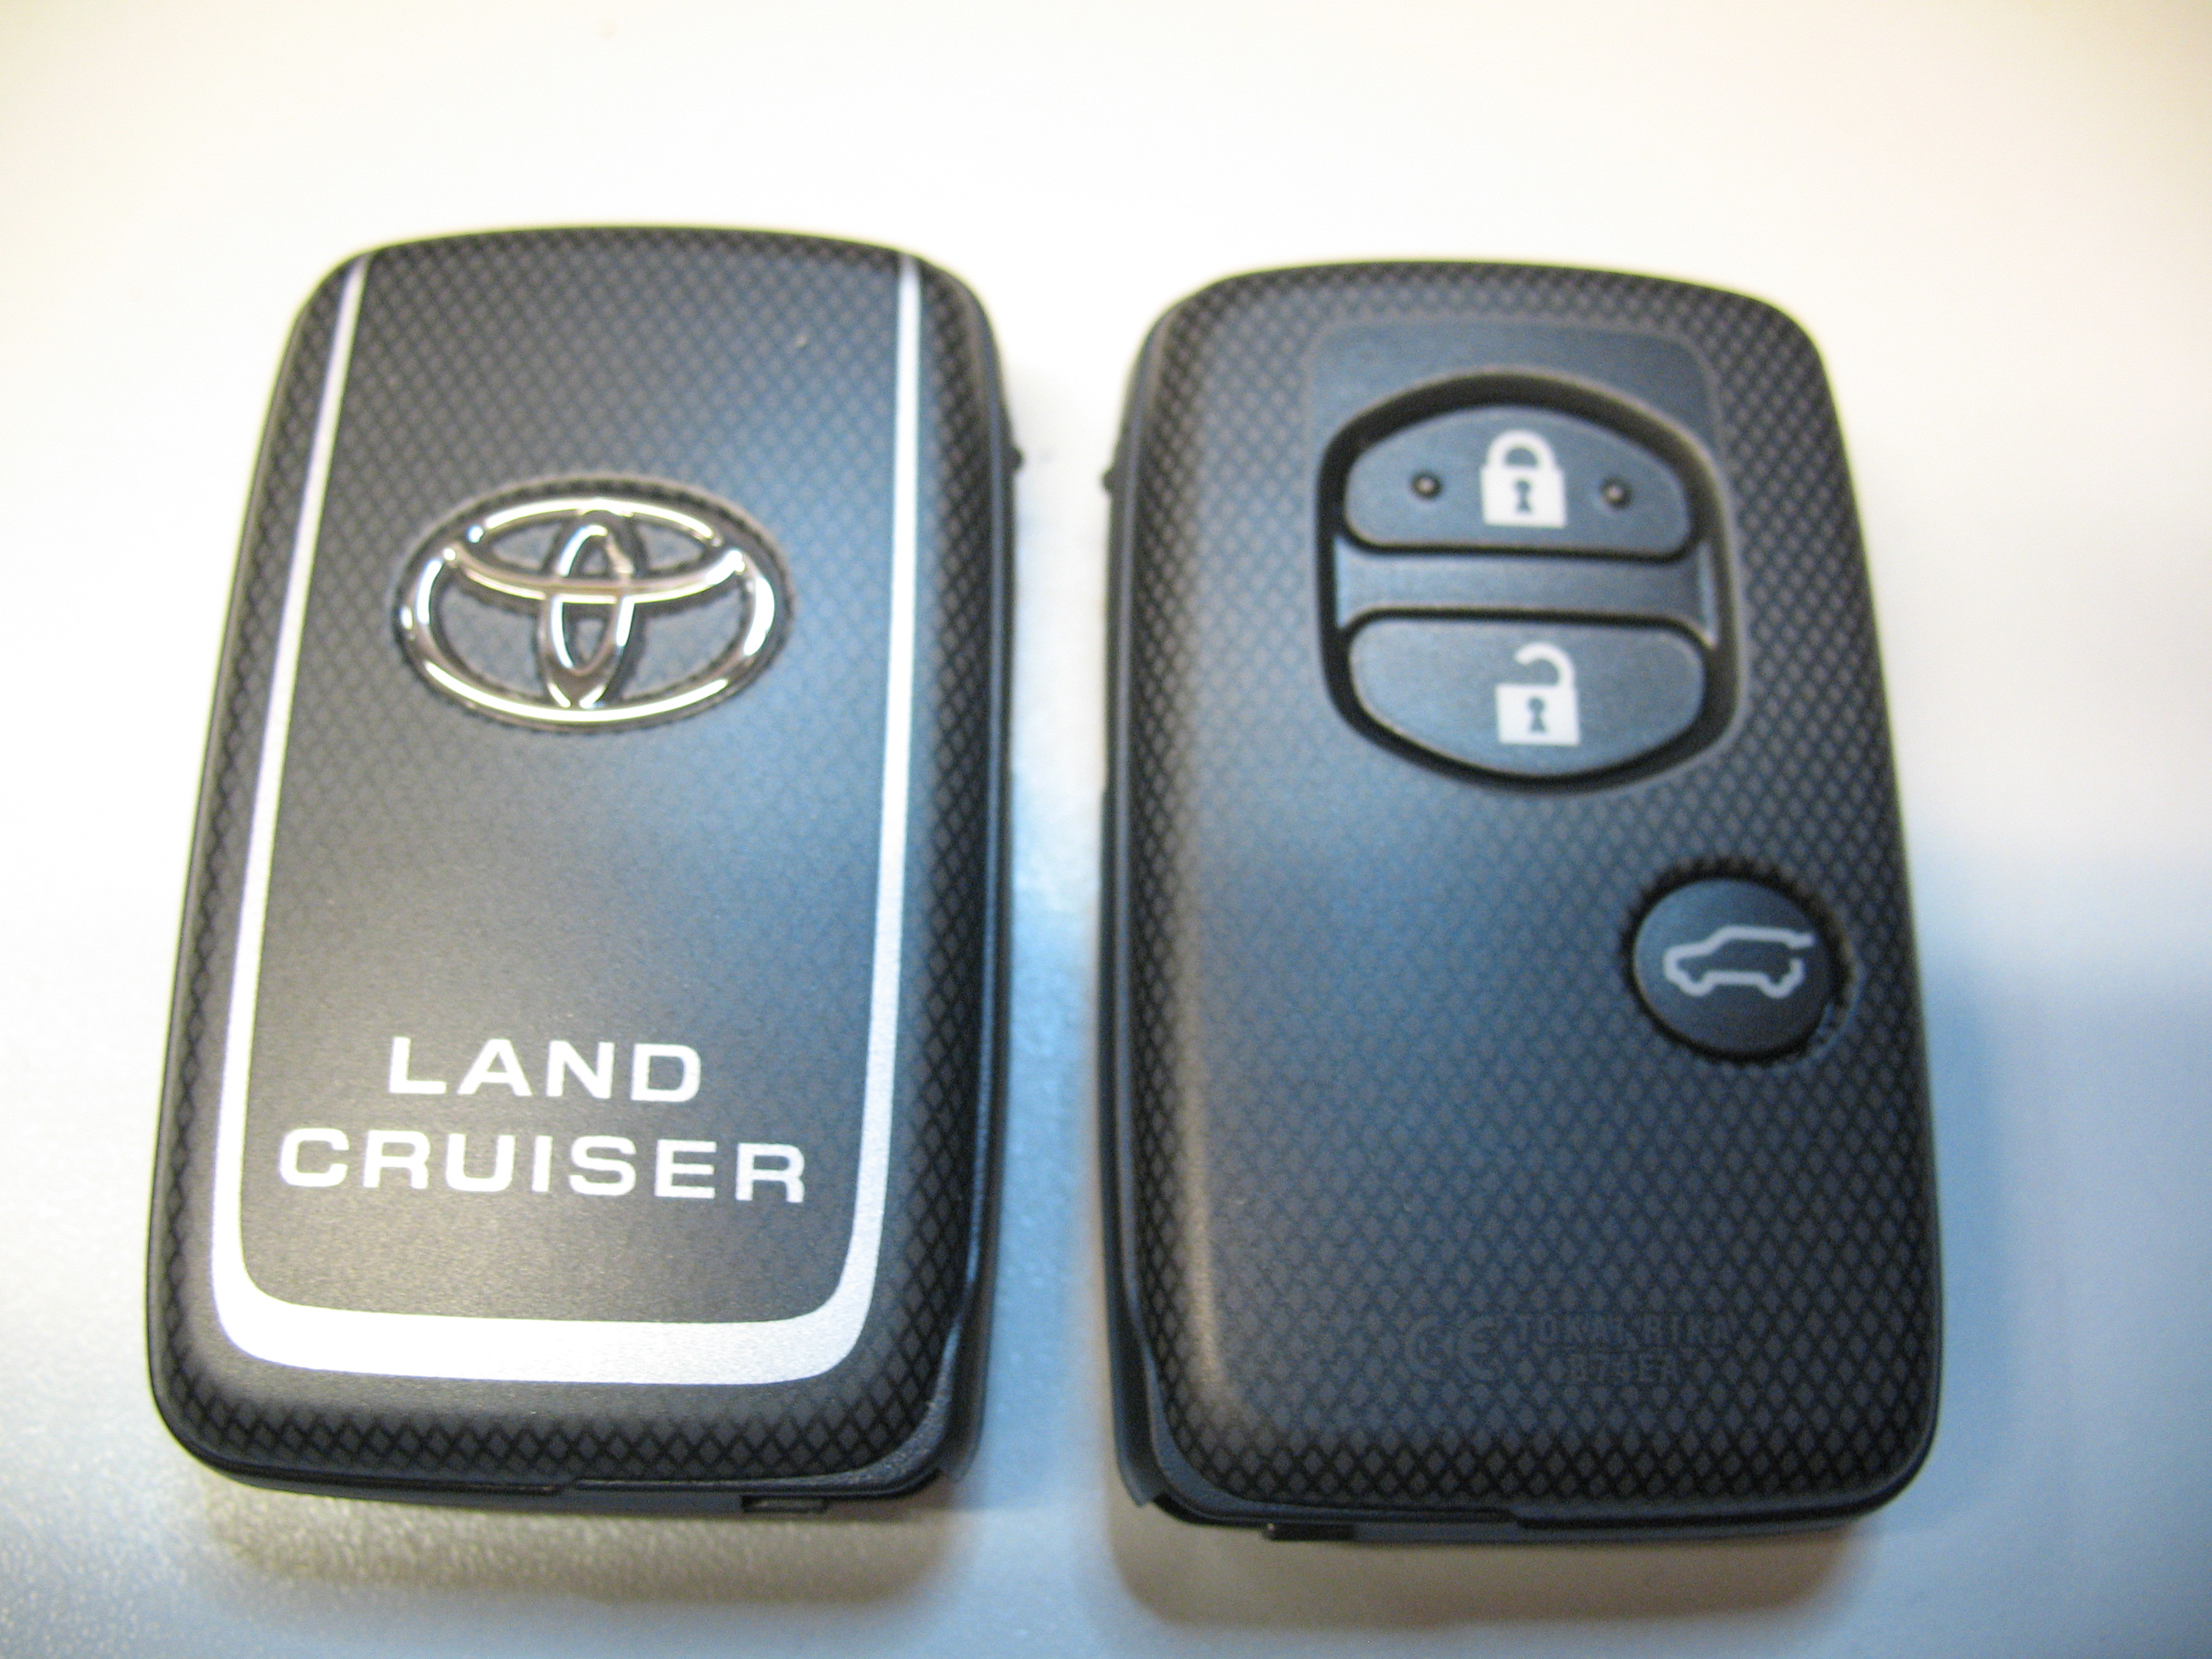 of fob key best toyota the for genuine sale used rakuten concept smart remotes new cover entry global lexus fobs fit keyless topsense market